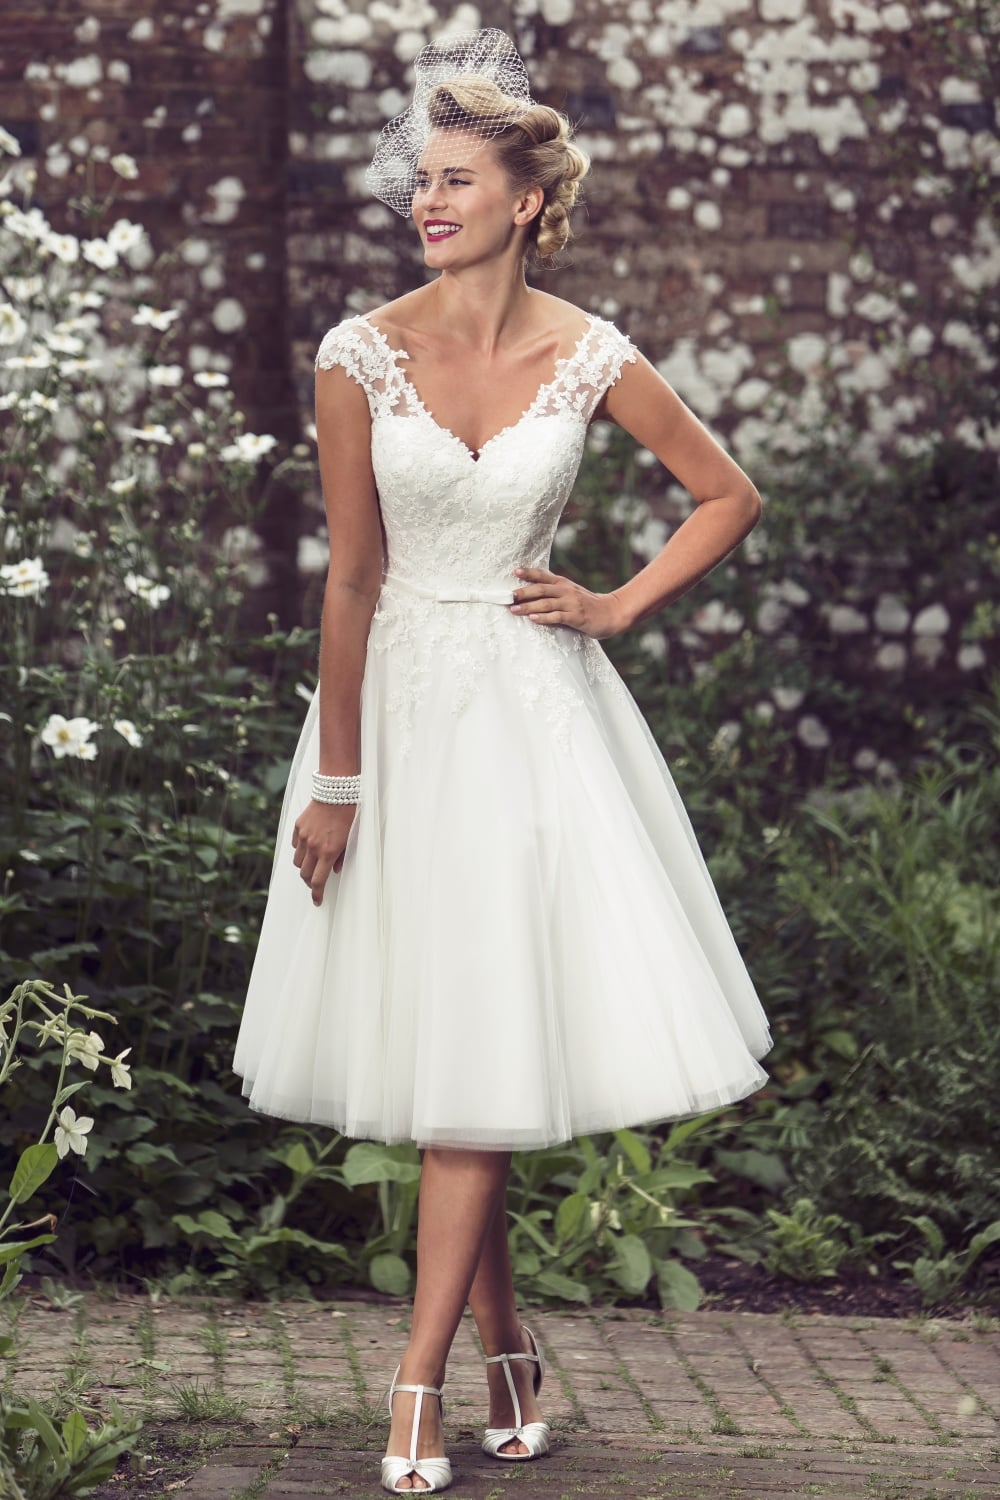 Fifties Wedding Dresses